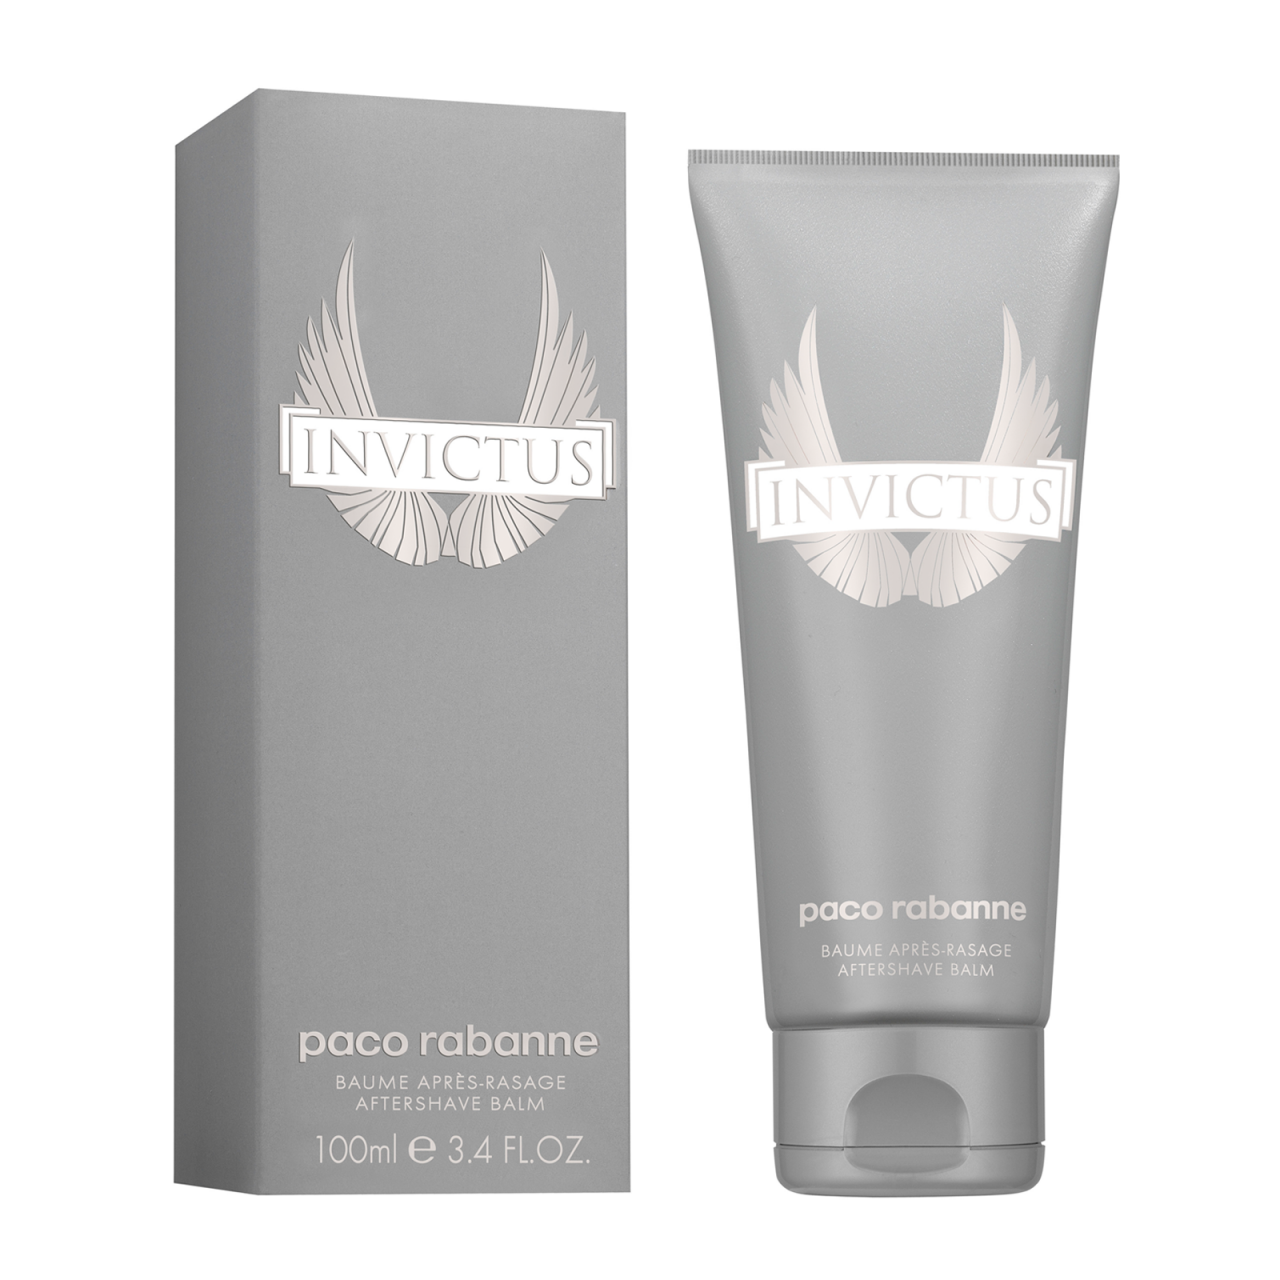 Paco Rabanne - Invictus After Shave Balm -